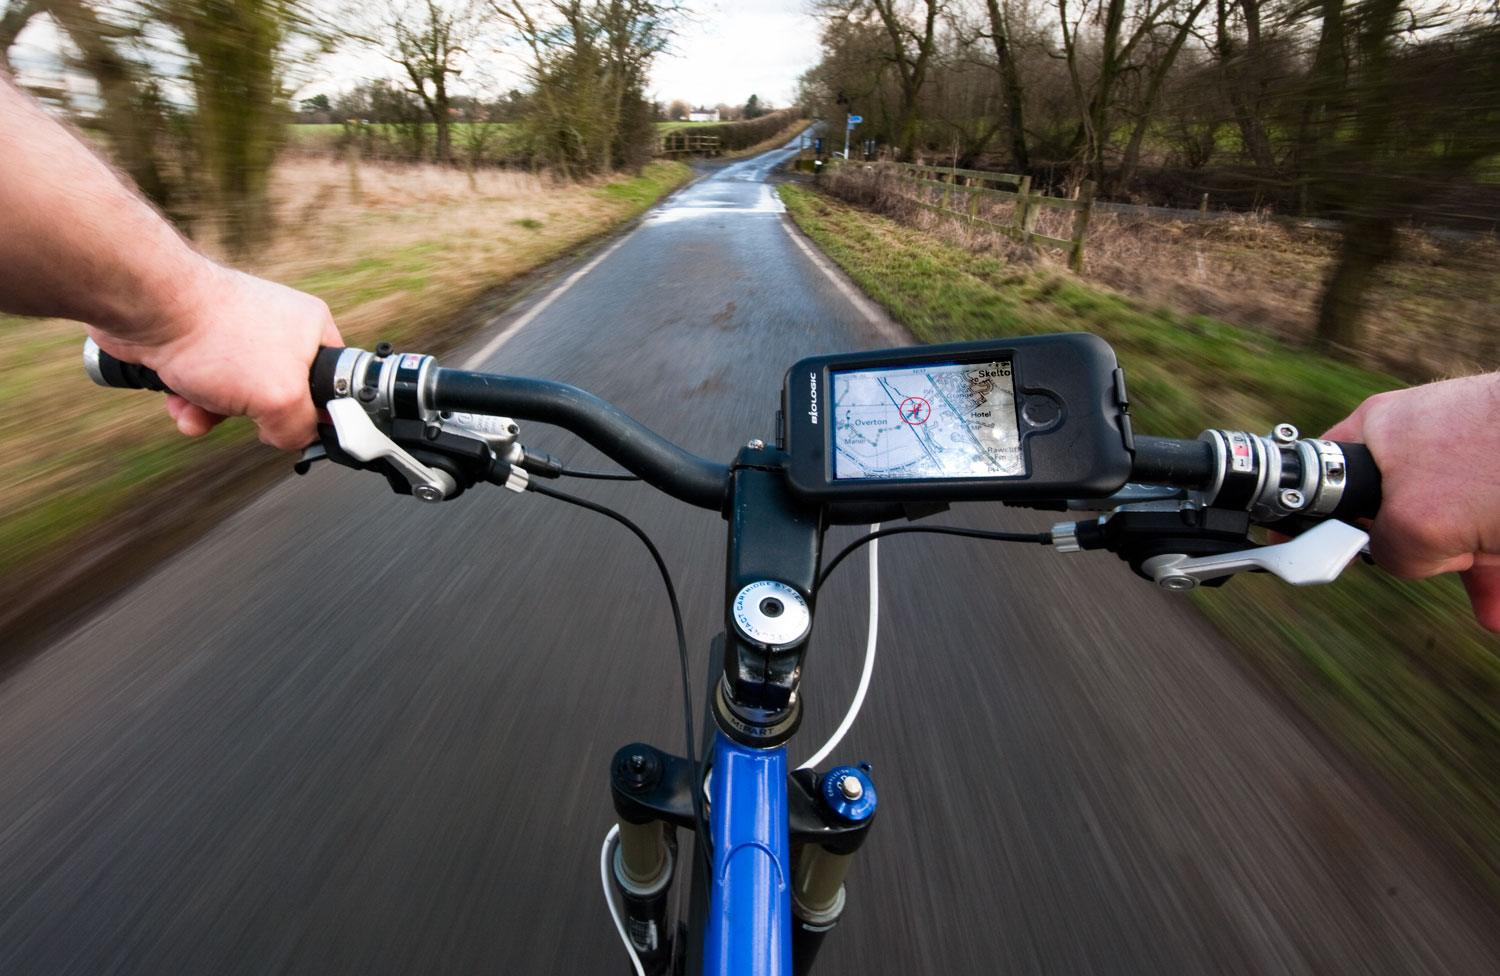 point of view shot of handlebars riding a bike